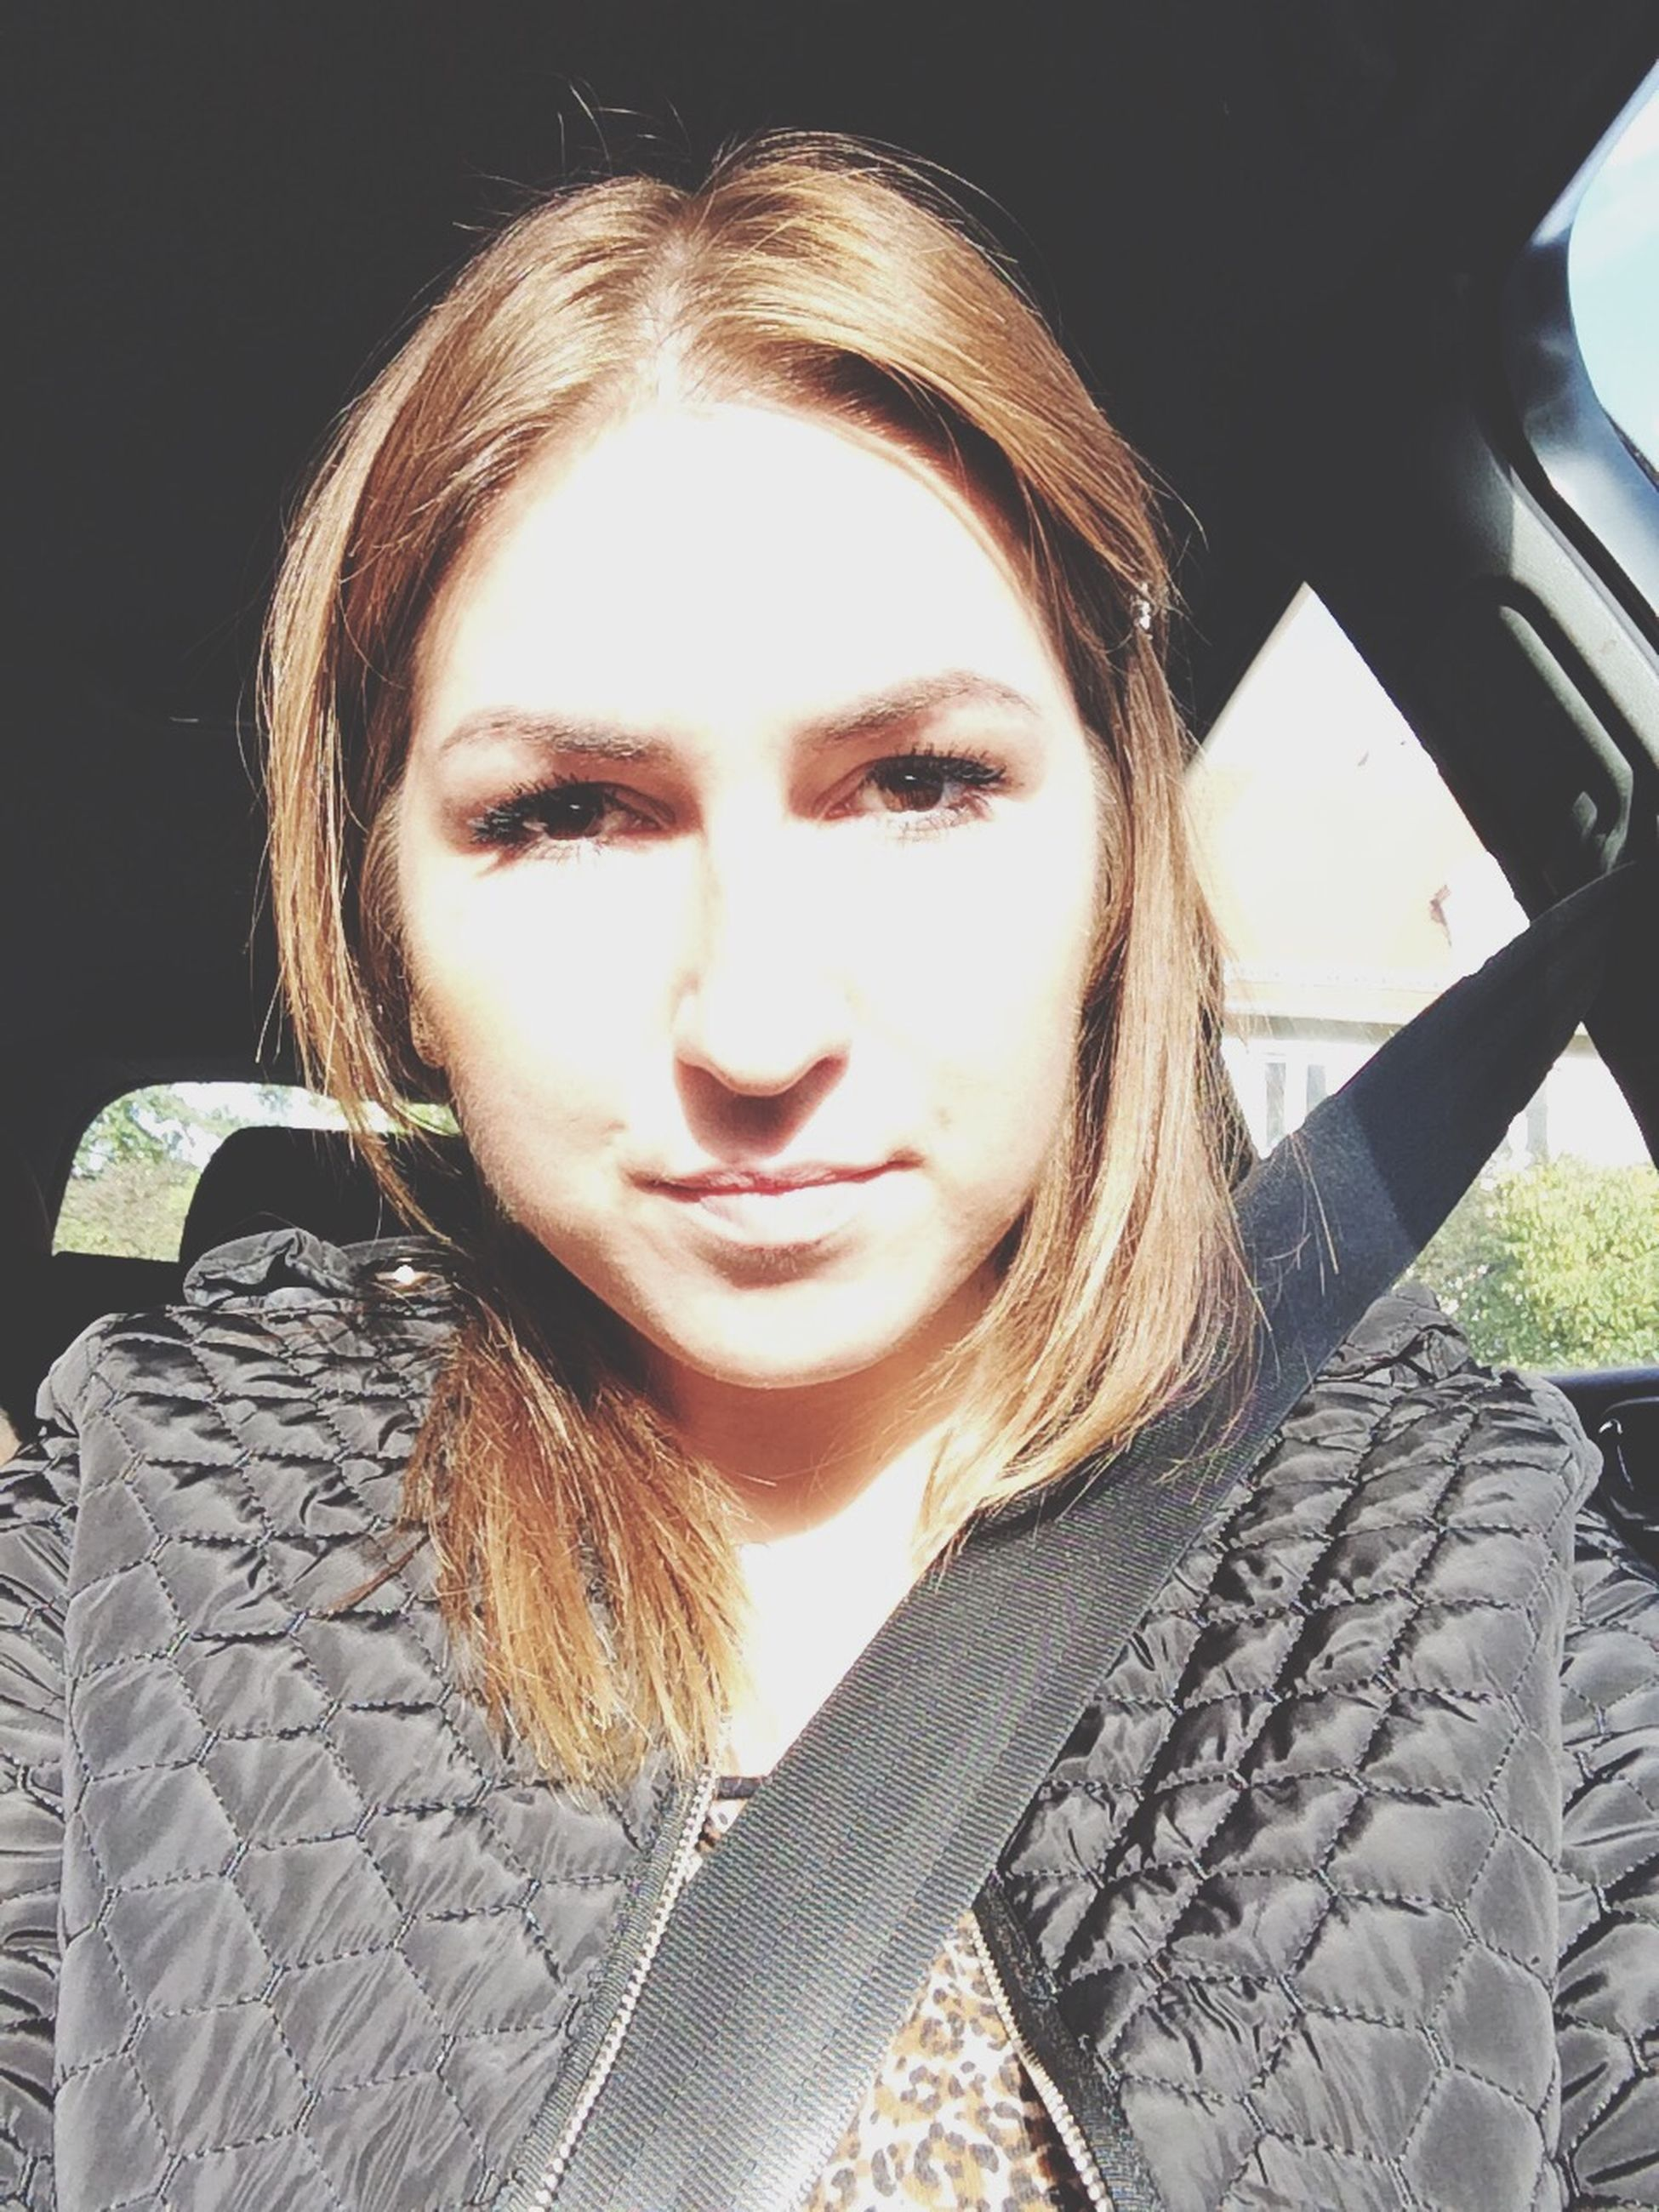 young adult, portrait, looking at camera, young women, lifestyles, person, headshot, leisure activity, front view, casual clothing, long hair, transportation, head and shoulders, close-up, sunlight, smiling, car